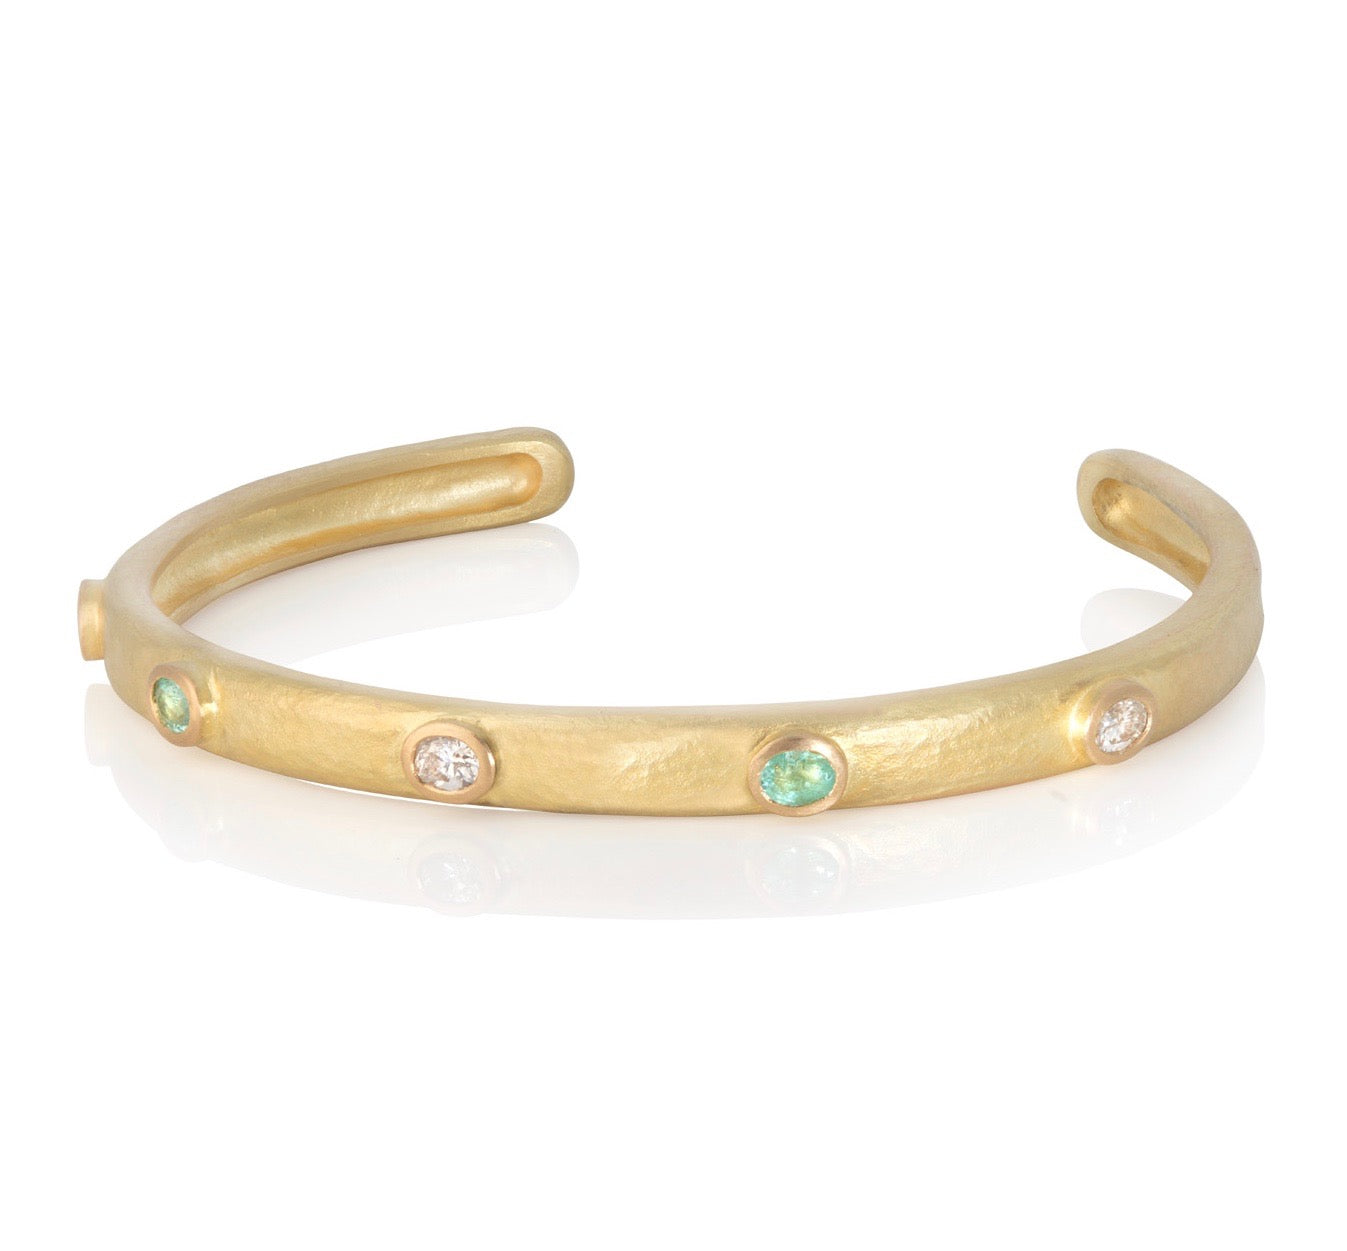 18ct yellow gold bangle with diamonds and paraiba tourmalines